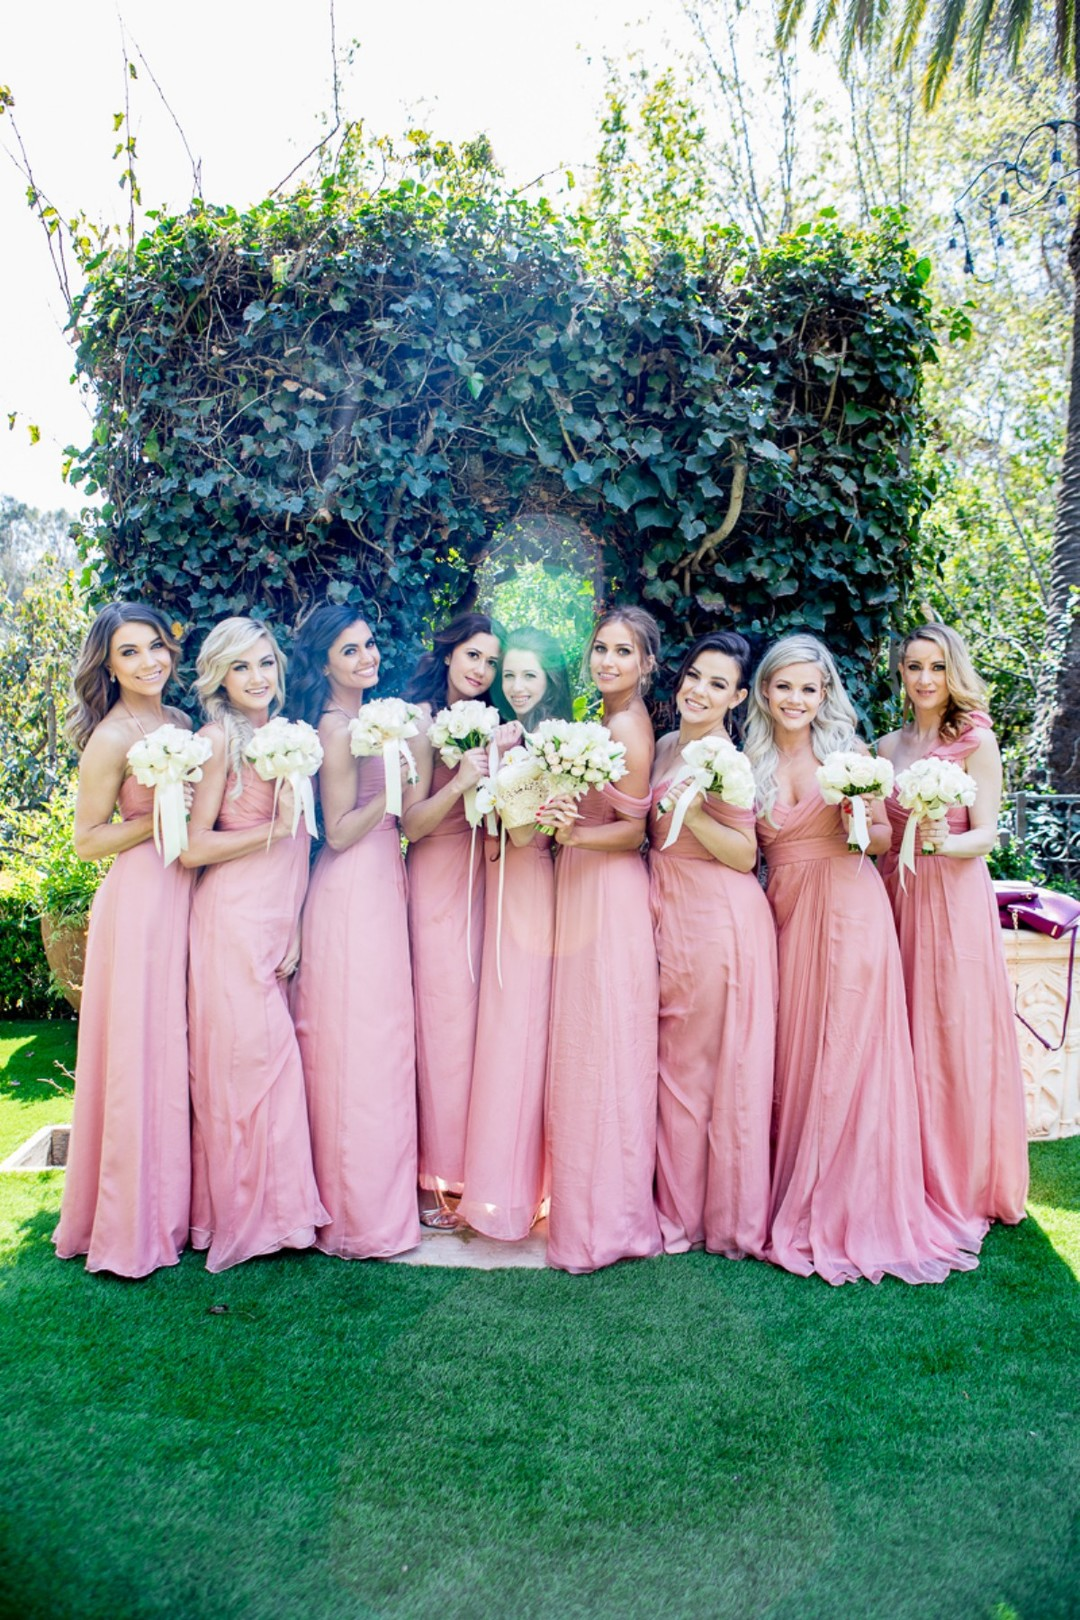 DWTS' Emma Slater and Sasha Farber's Wedding, Bella Blanca Event Center, Emma Slater's bridesmaids gowns